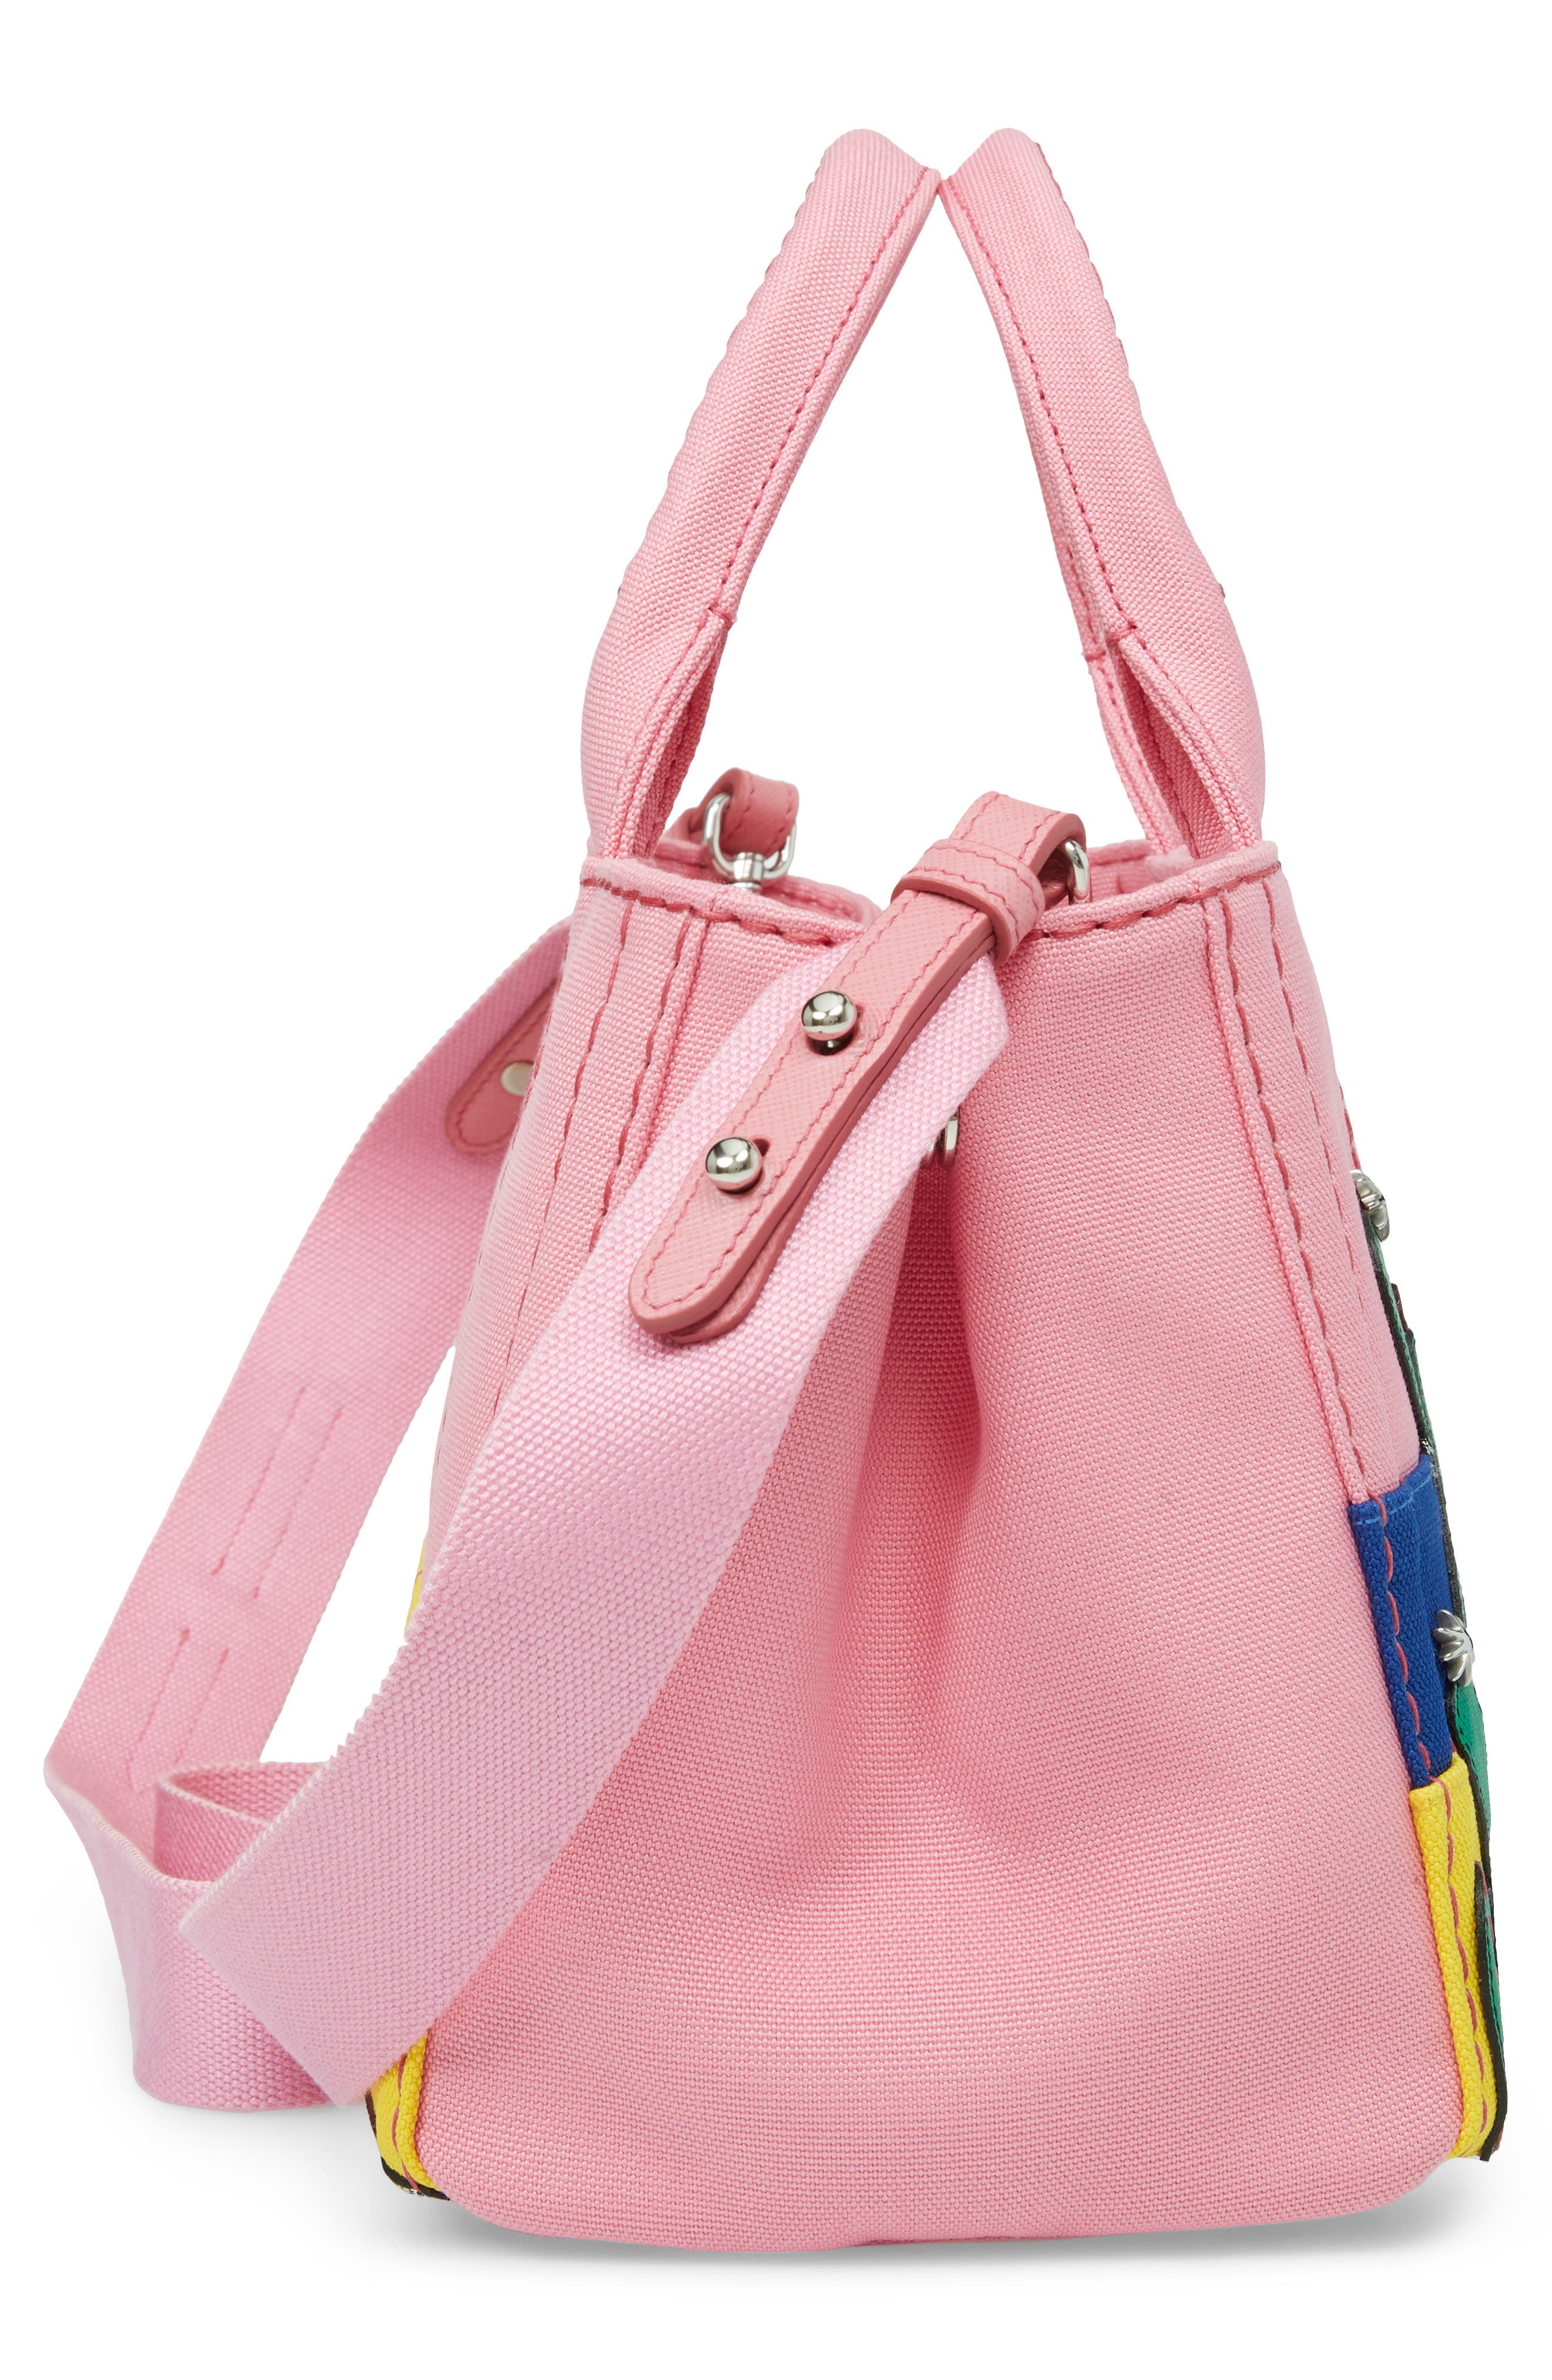 Desert Motif Patch Leather & Canvas Tote,                             Alternate thumbnail 5, color,                             PINK